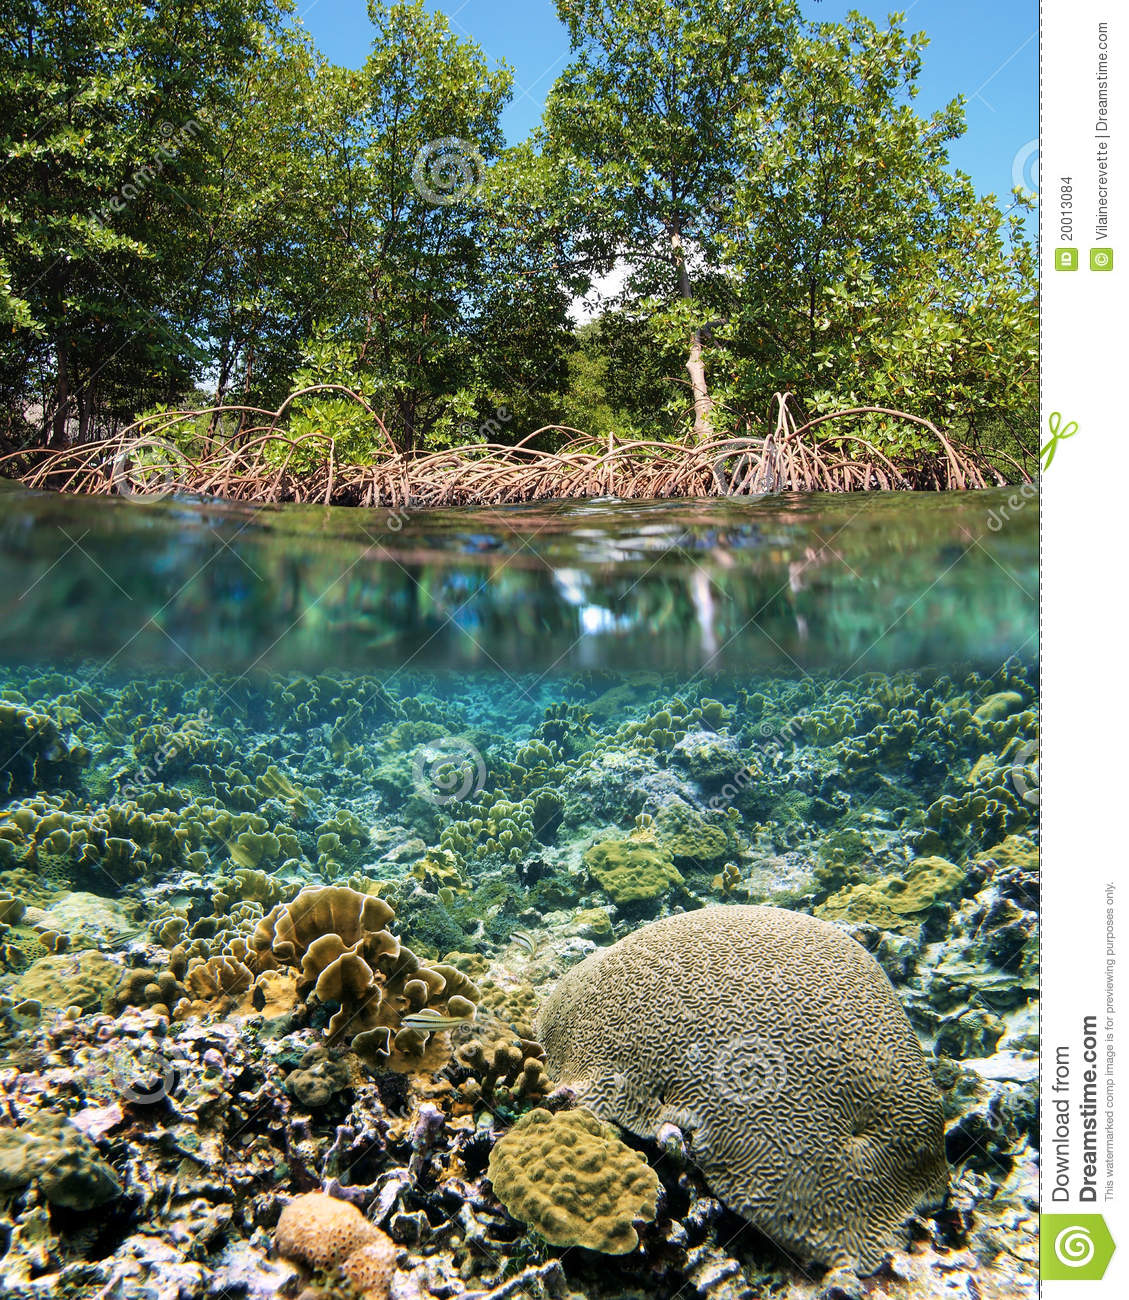 Surface and underwater view with mangrove and coral ecosystem.